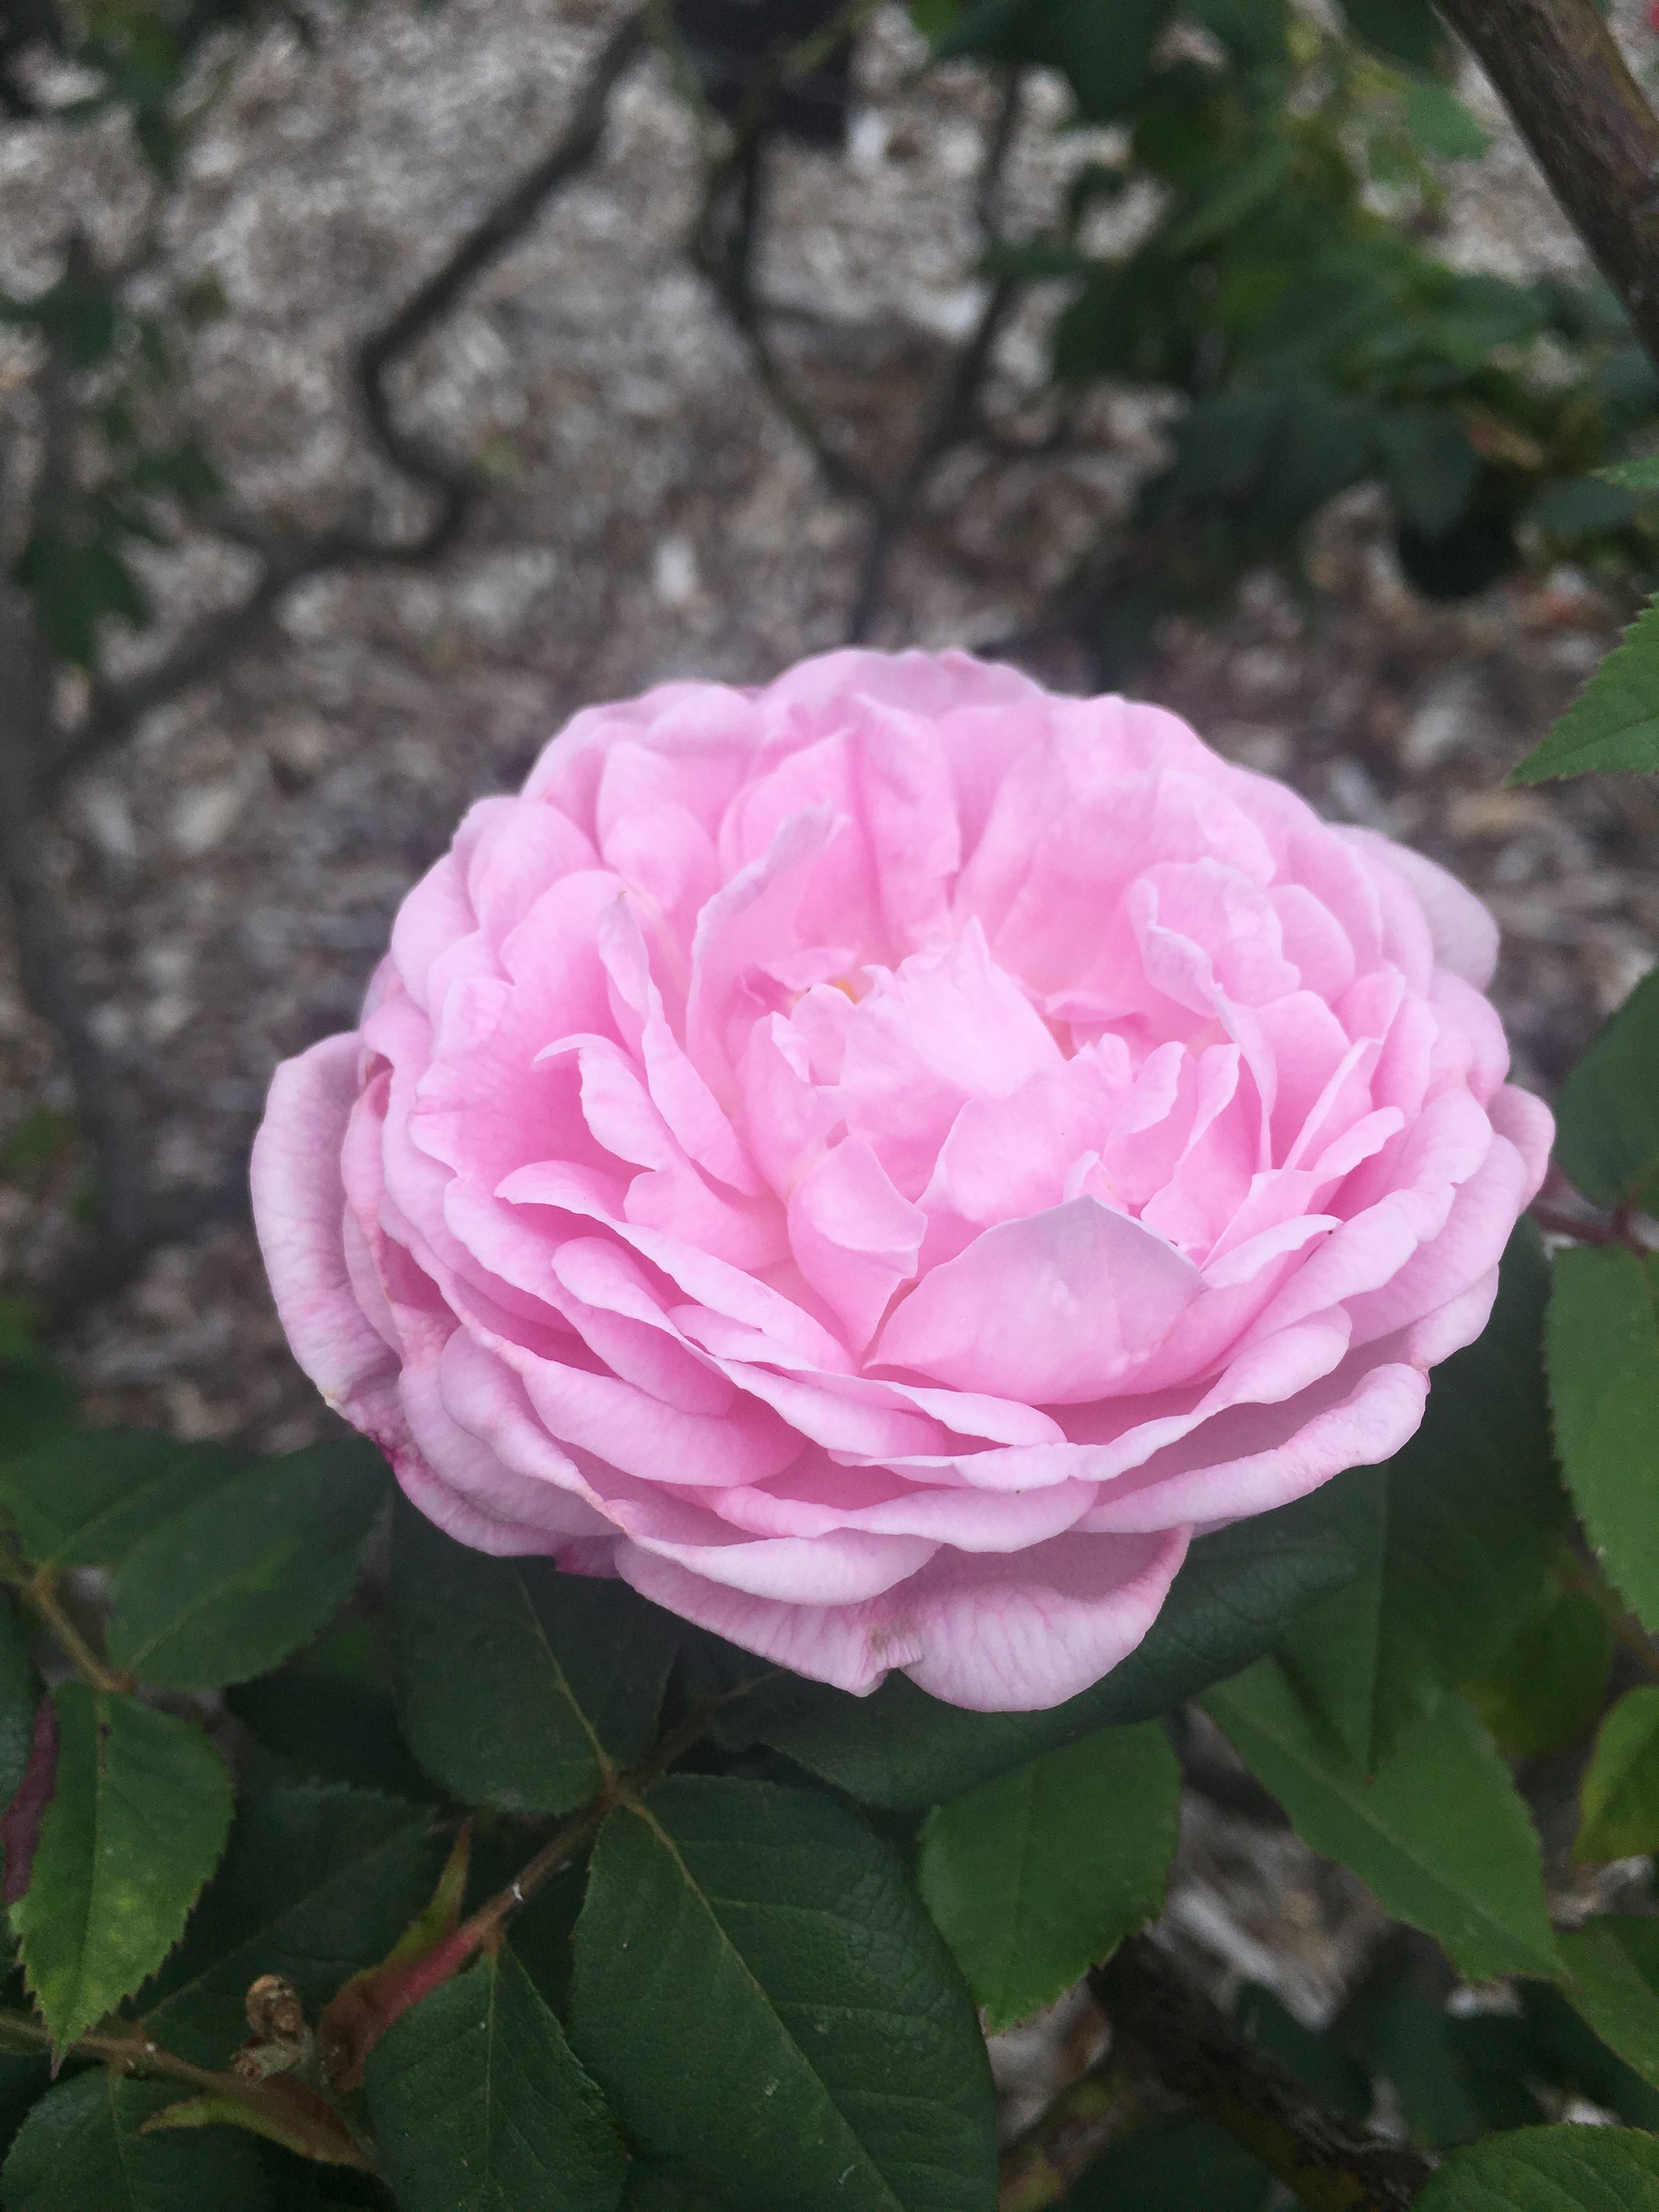 It's easy to see why Joséphine loved roses so much. Not only is it beautiful it smelt so rich and sweet too!